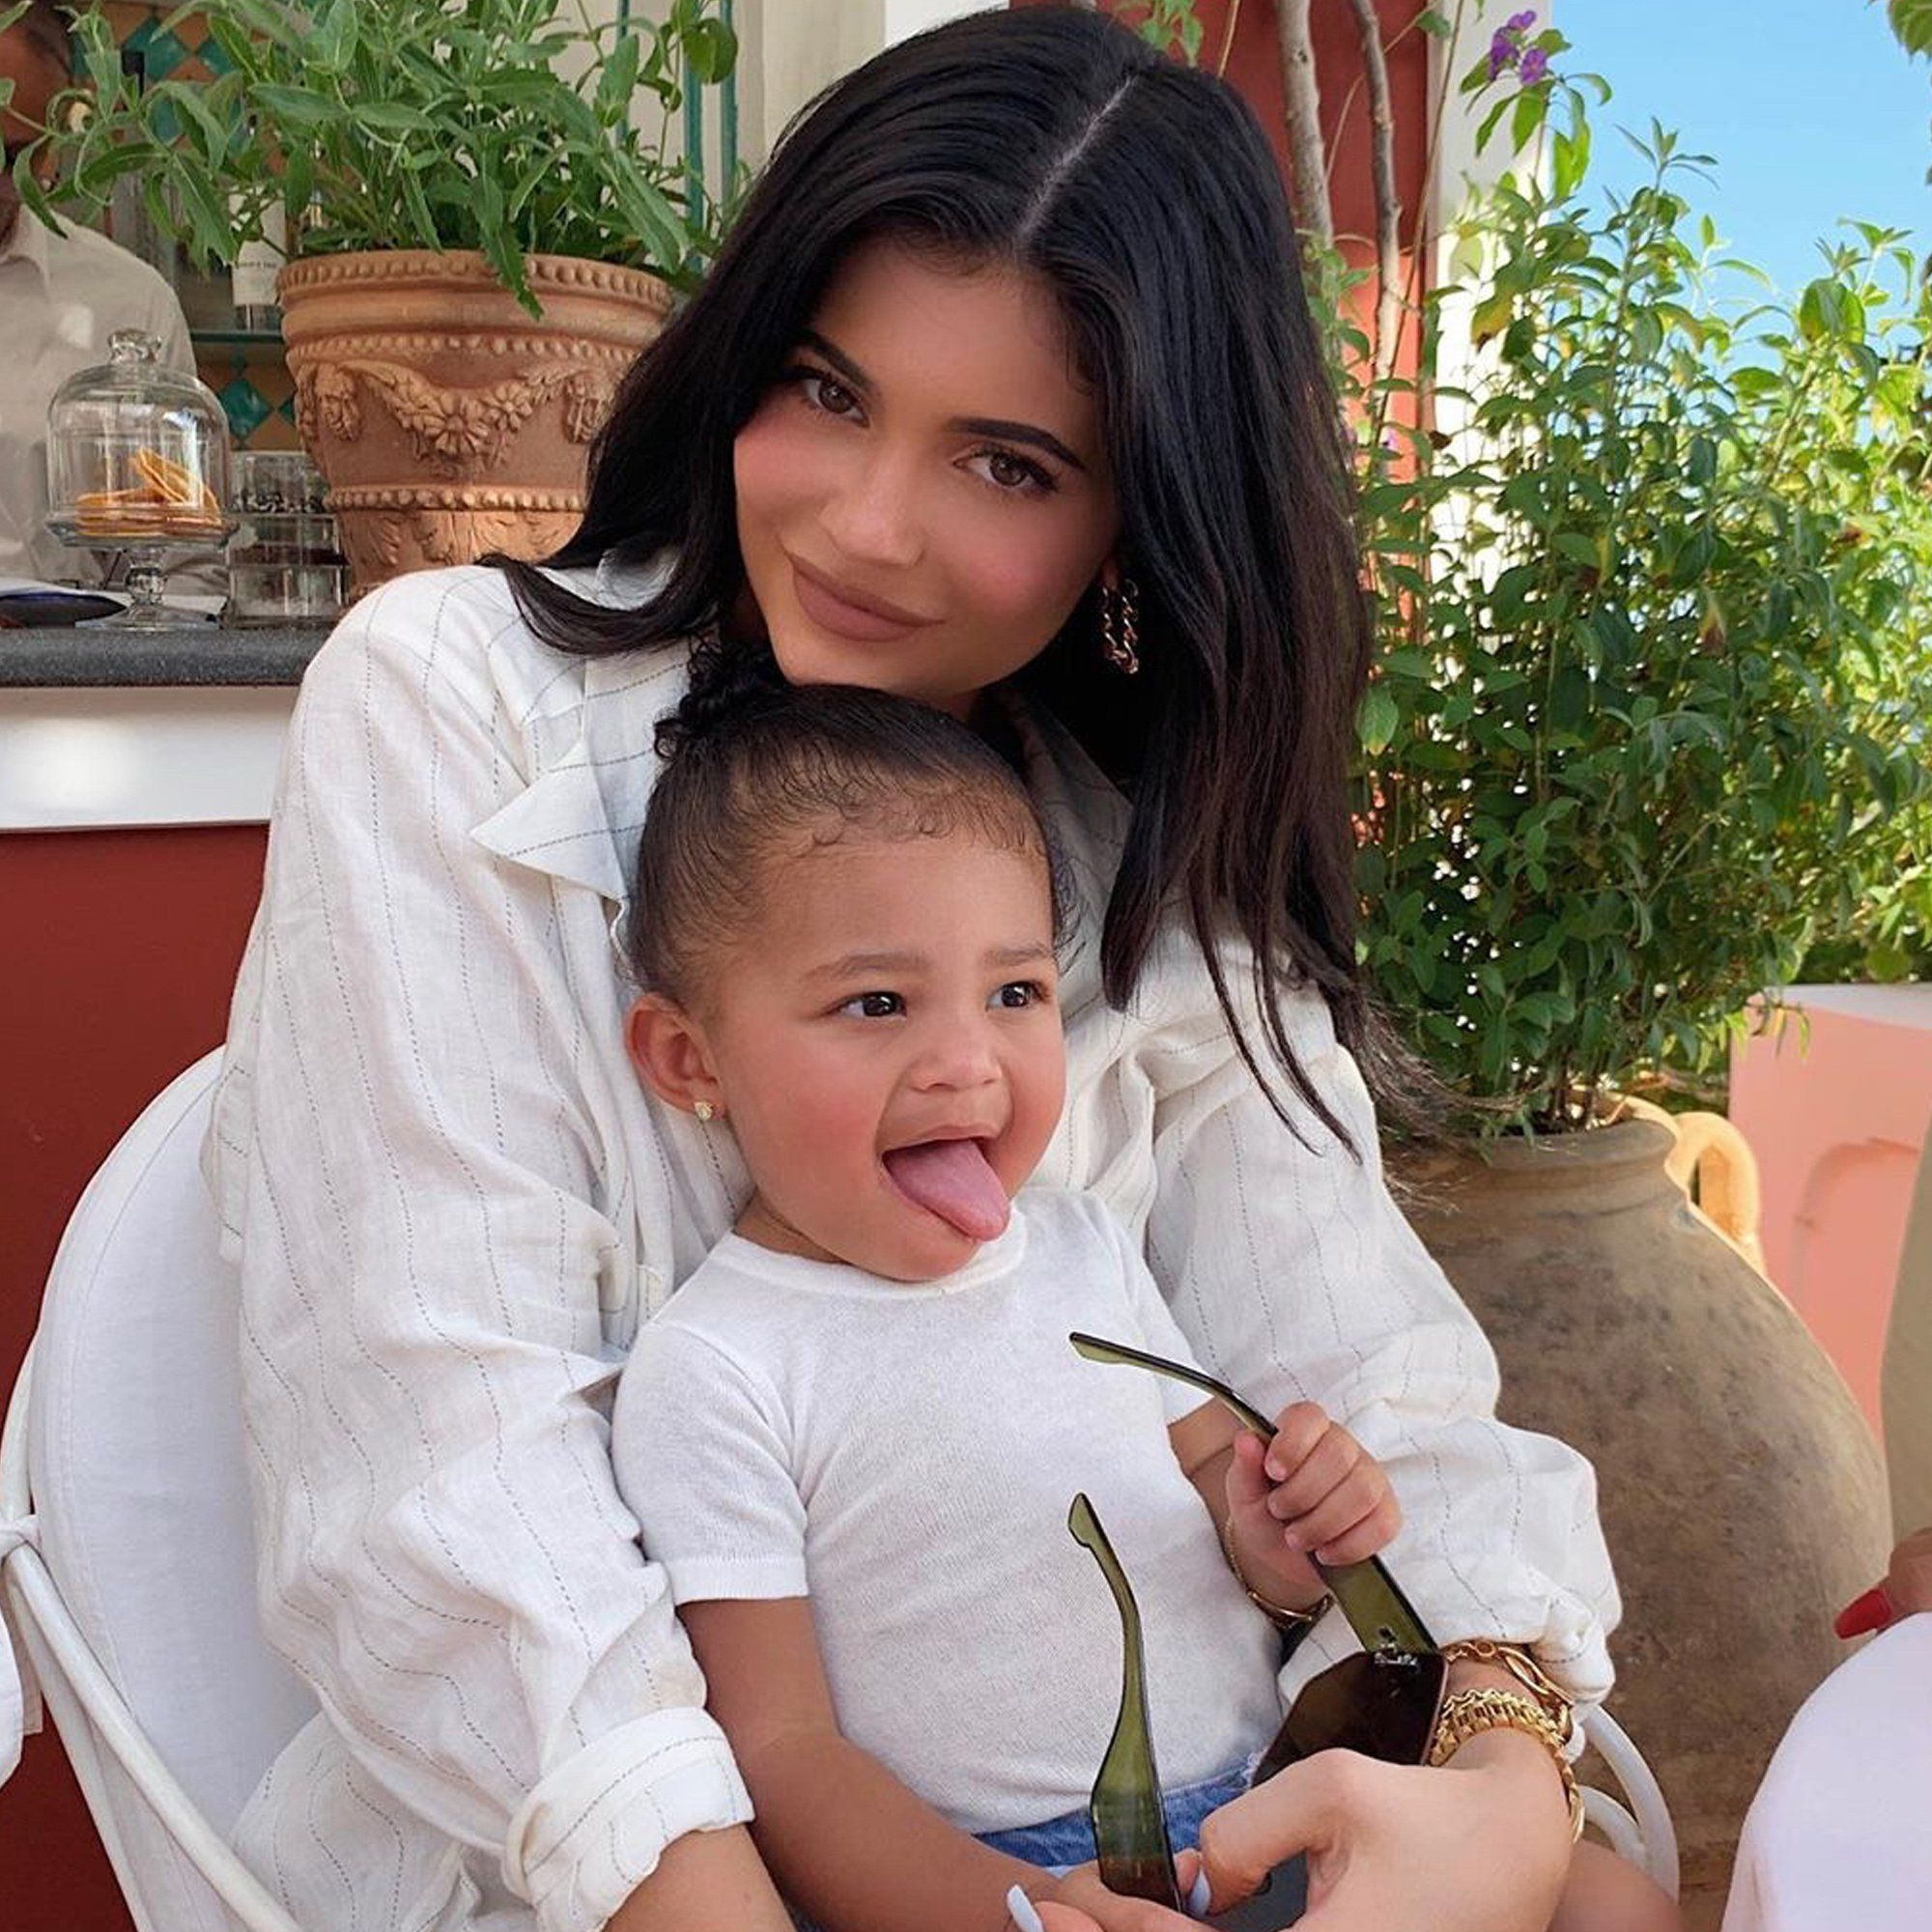 Kylie Jenner Blows Fans' Minds With Footage From Stormi